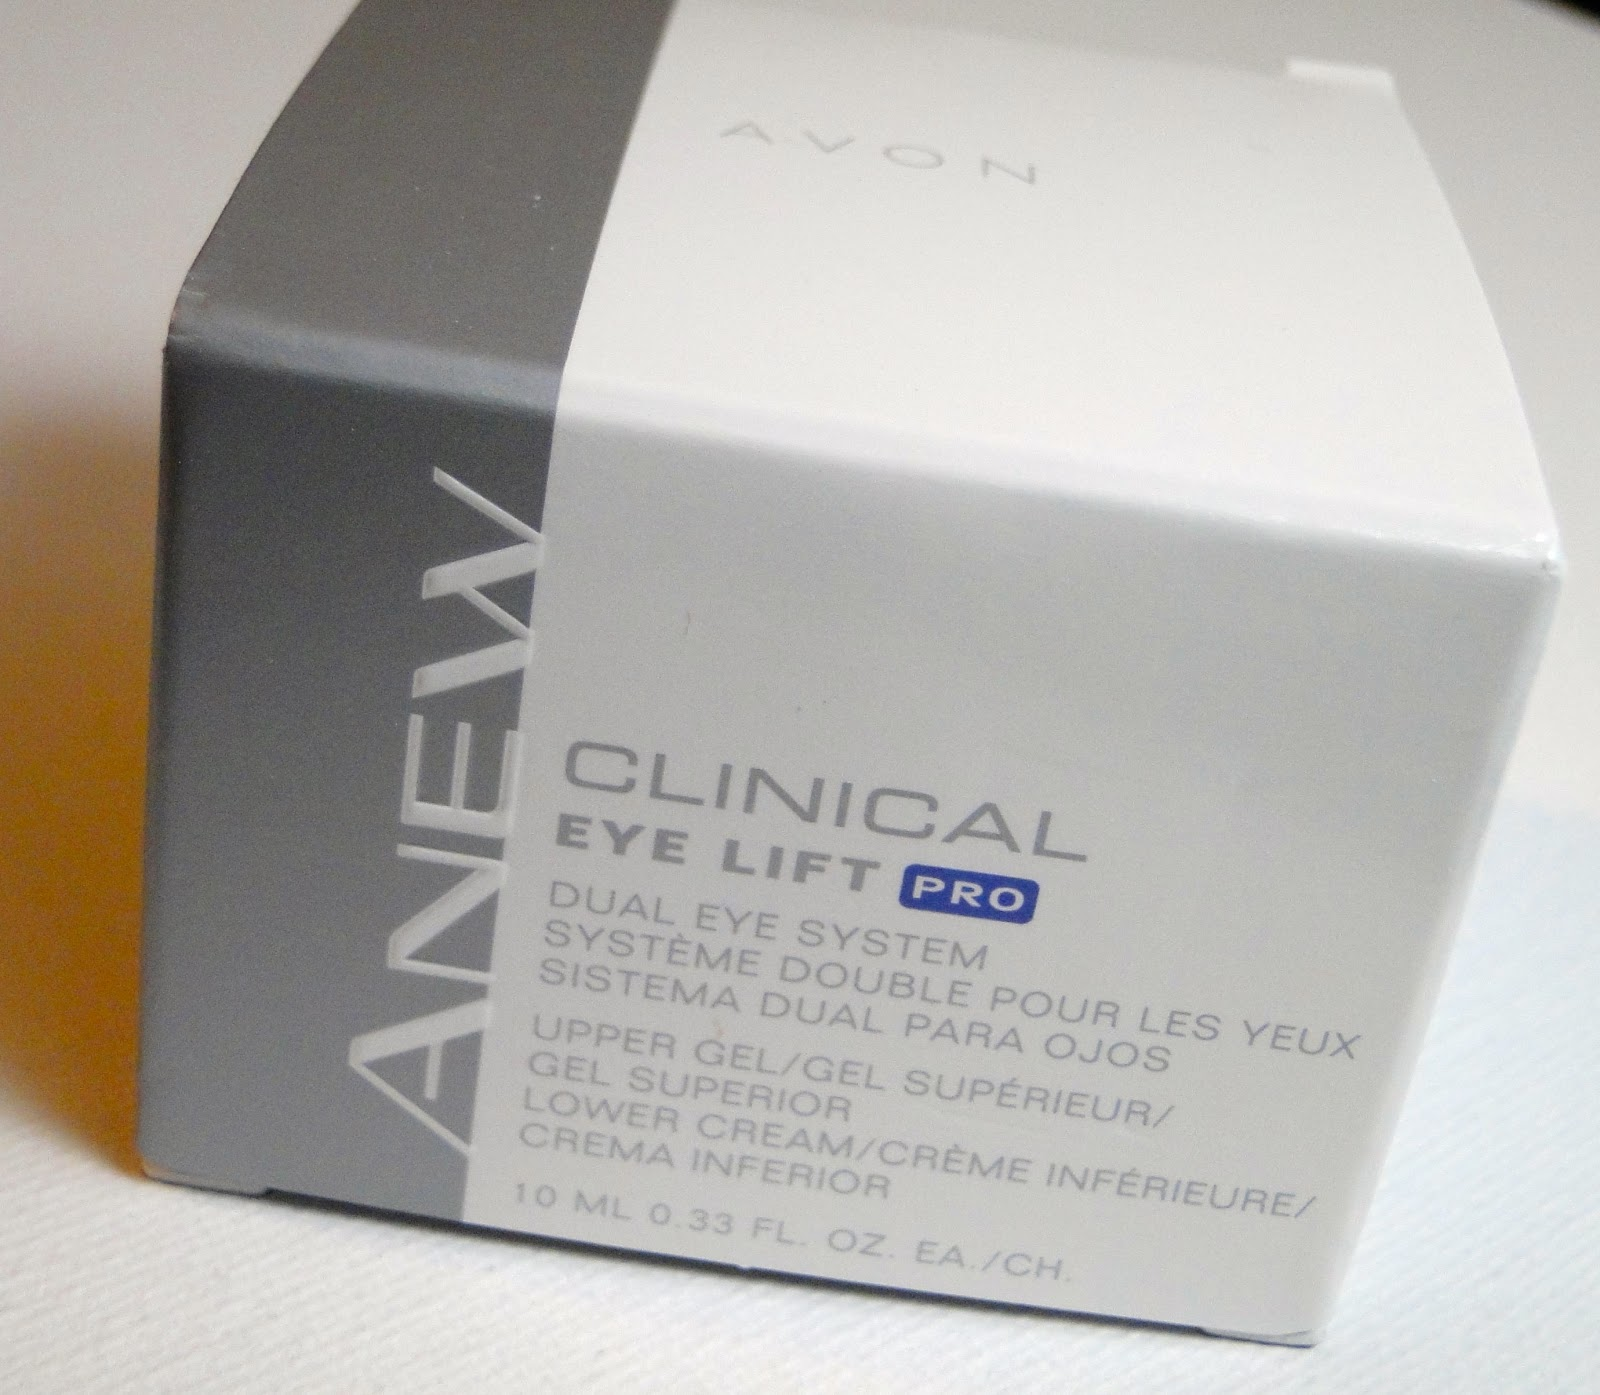 anew clinical eye lift